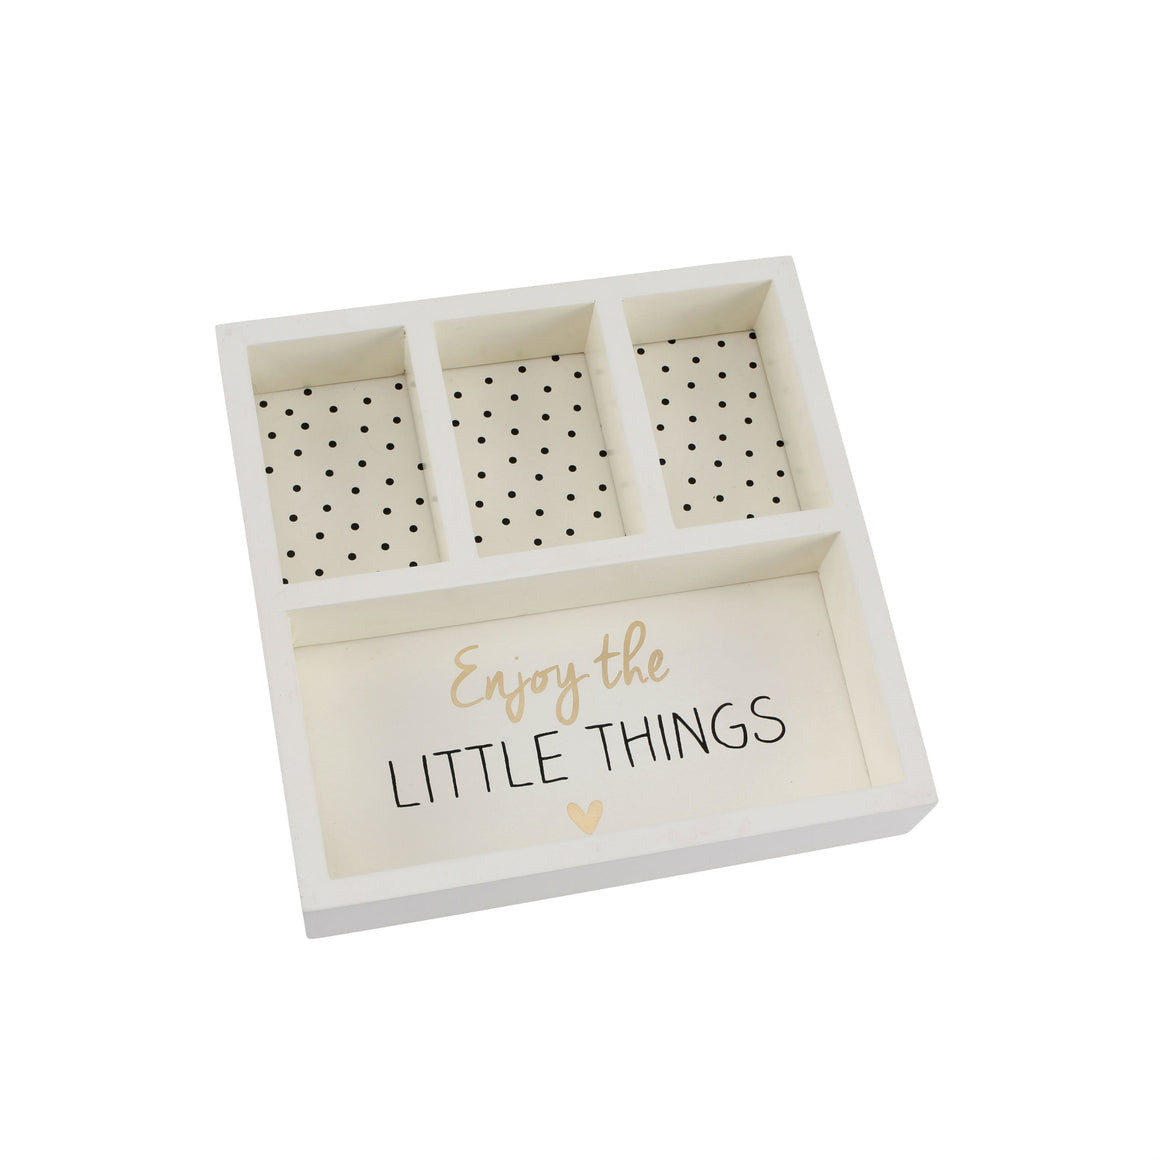 Absolutely Fabulous 'Enjoy The Little Things' Jewellery Box Tray - The Love Trees